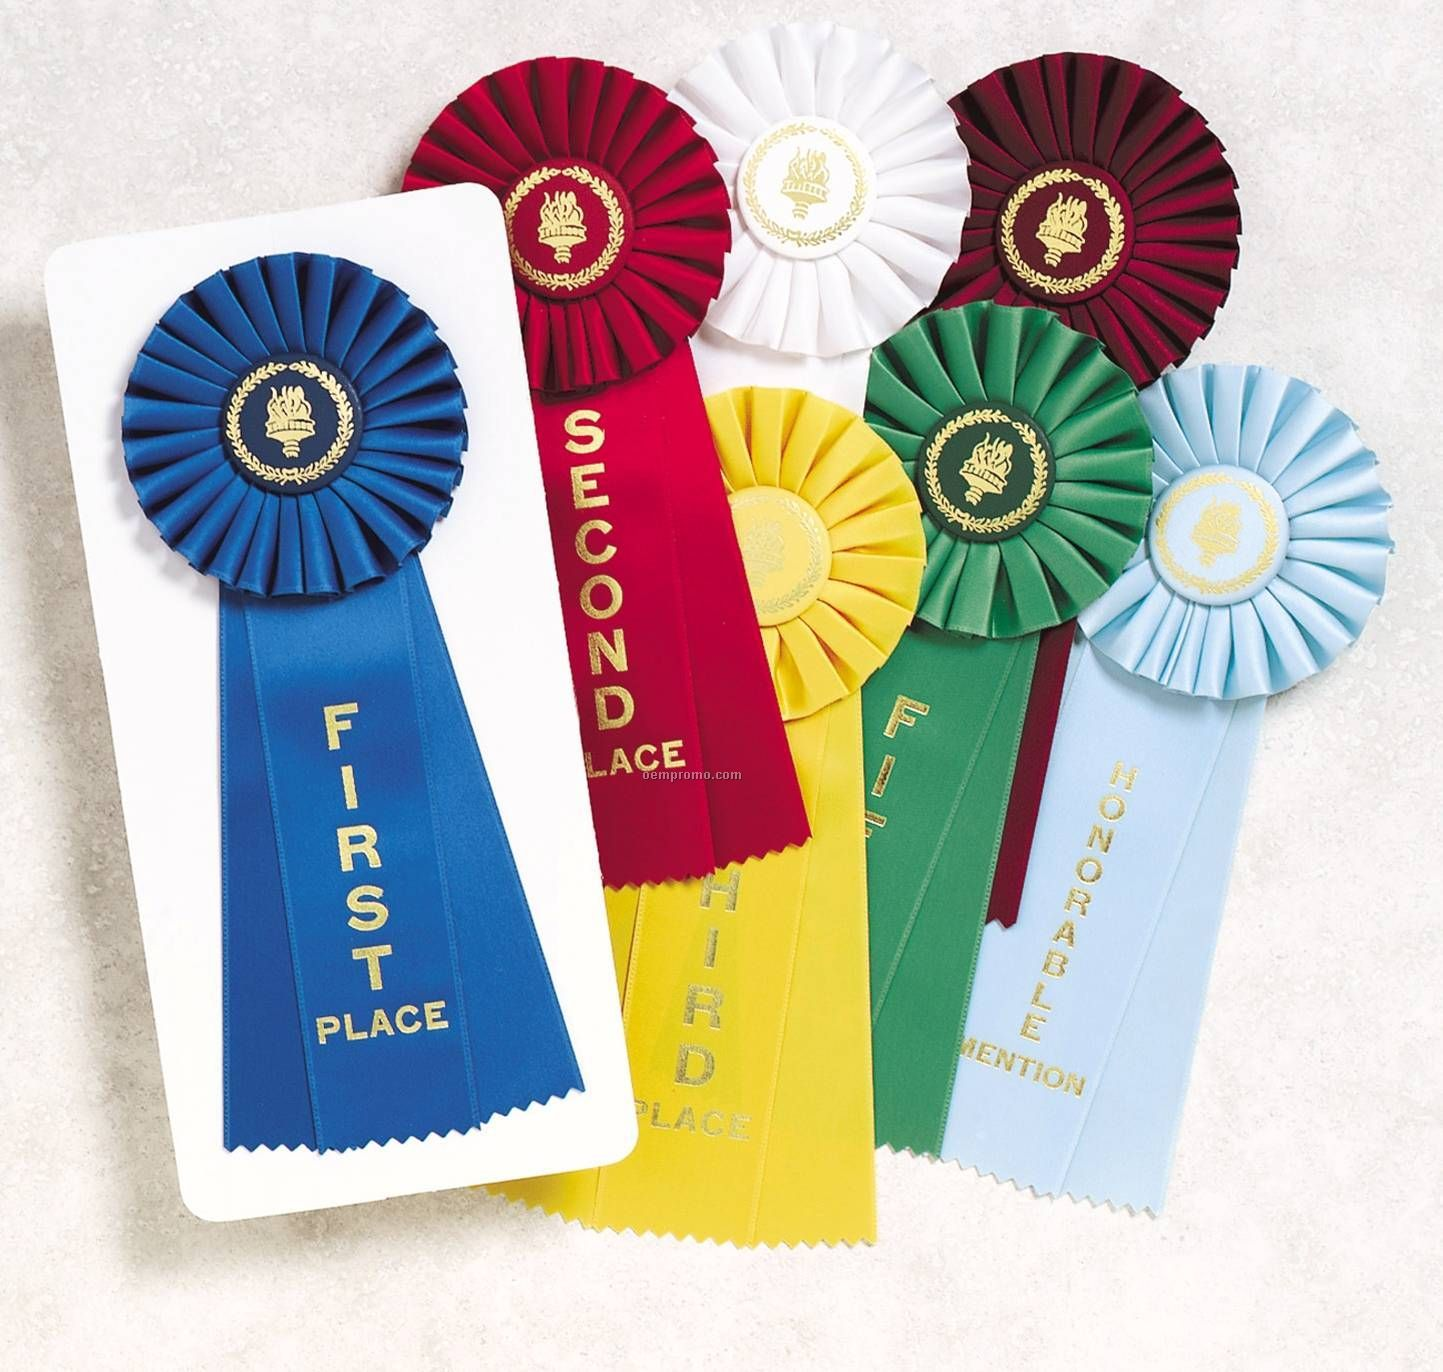 Rosette Ribbon - 4-12   X 11   First Place Ribbon Red